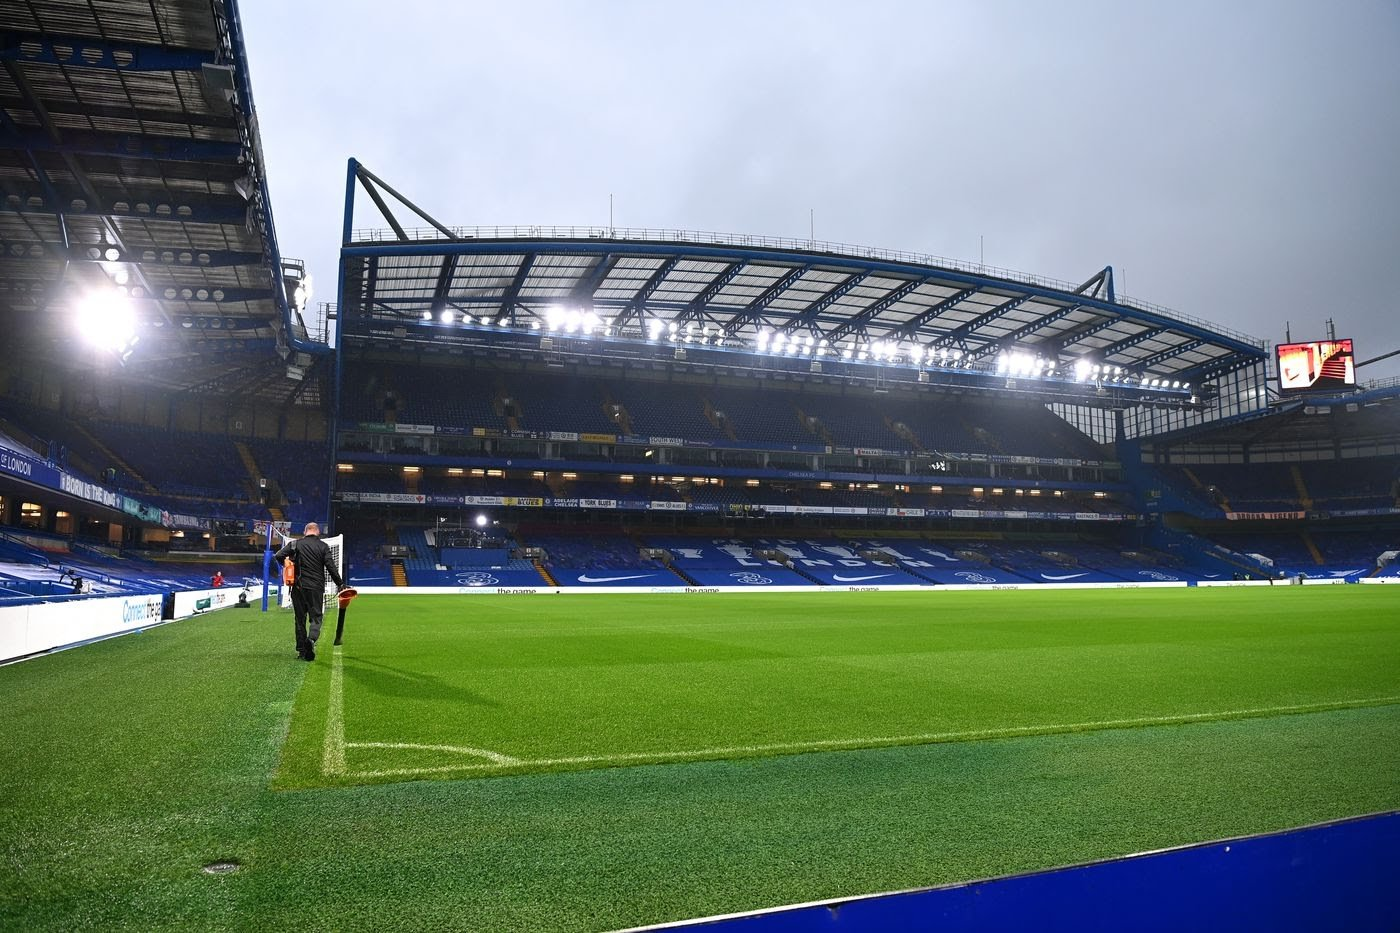 Chelsea vs Crystal Palace Live Stream